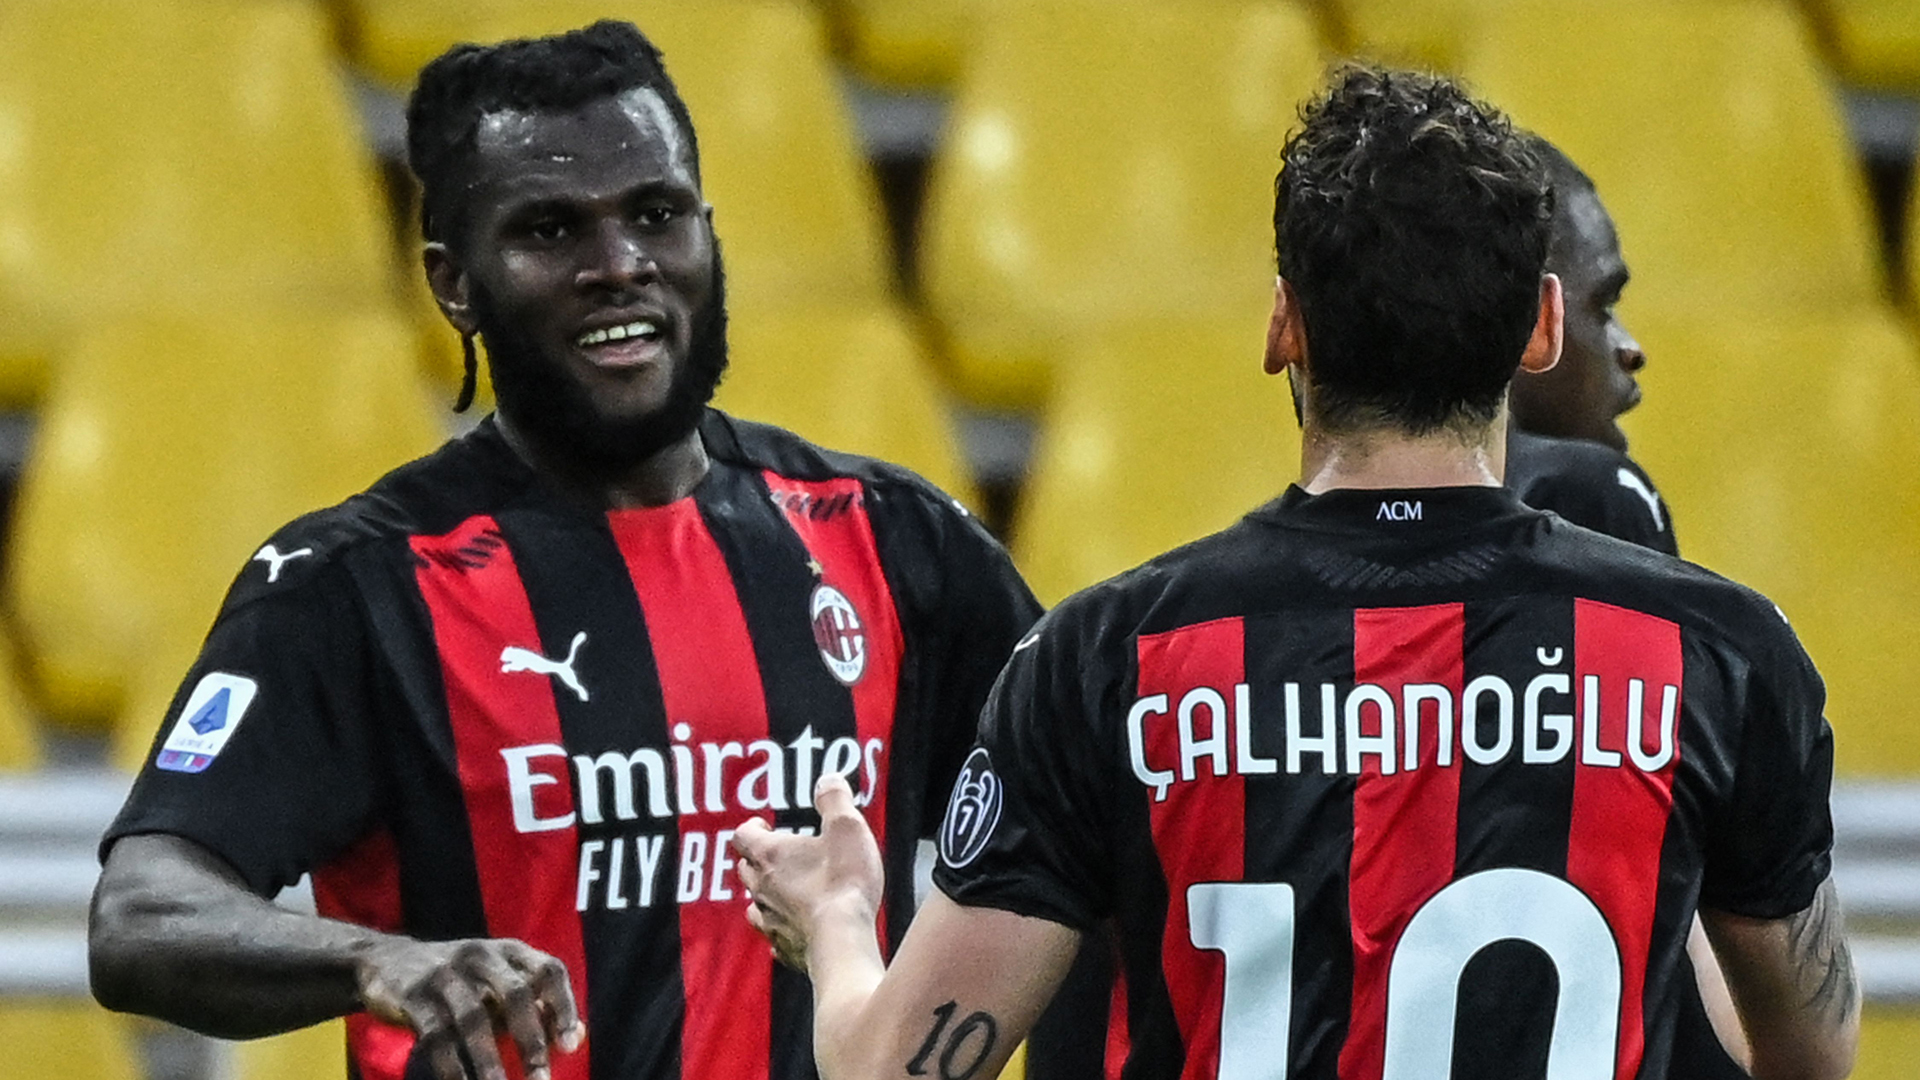 Fan View: AC Milan's Kessie would be good signing for Liverpool